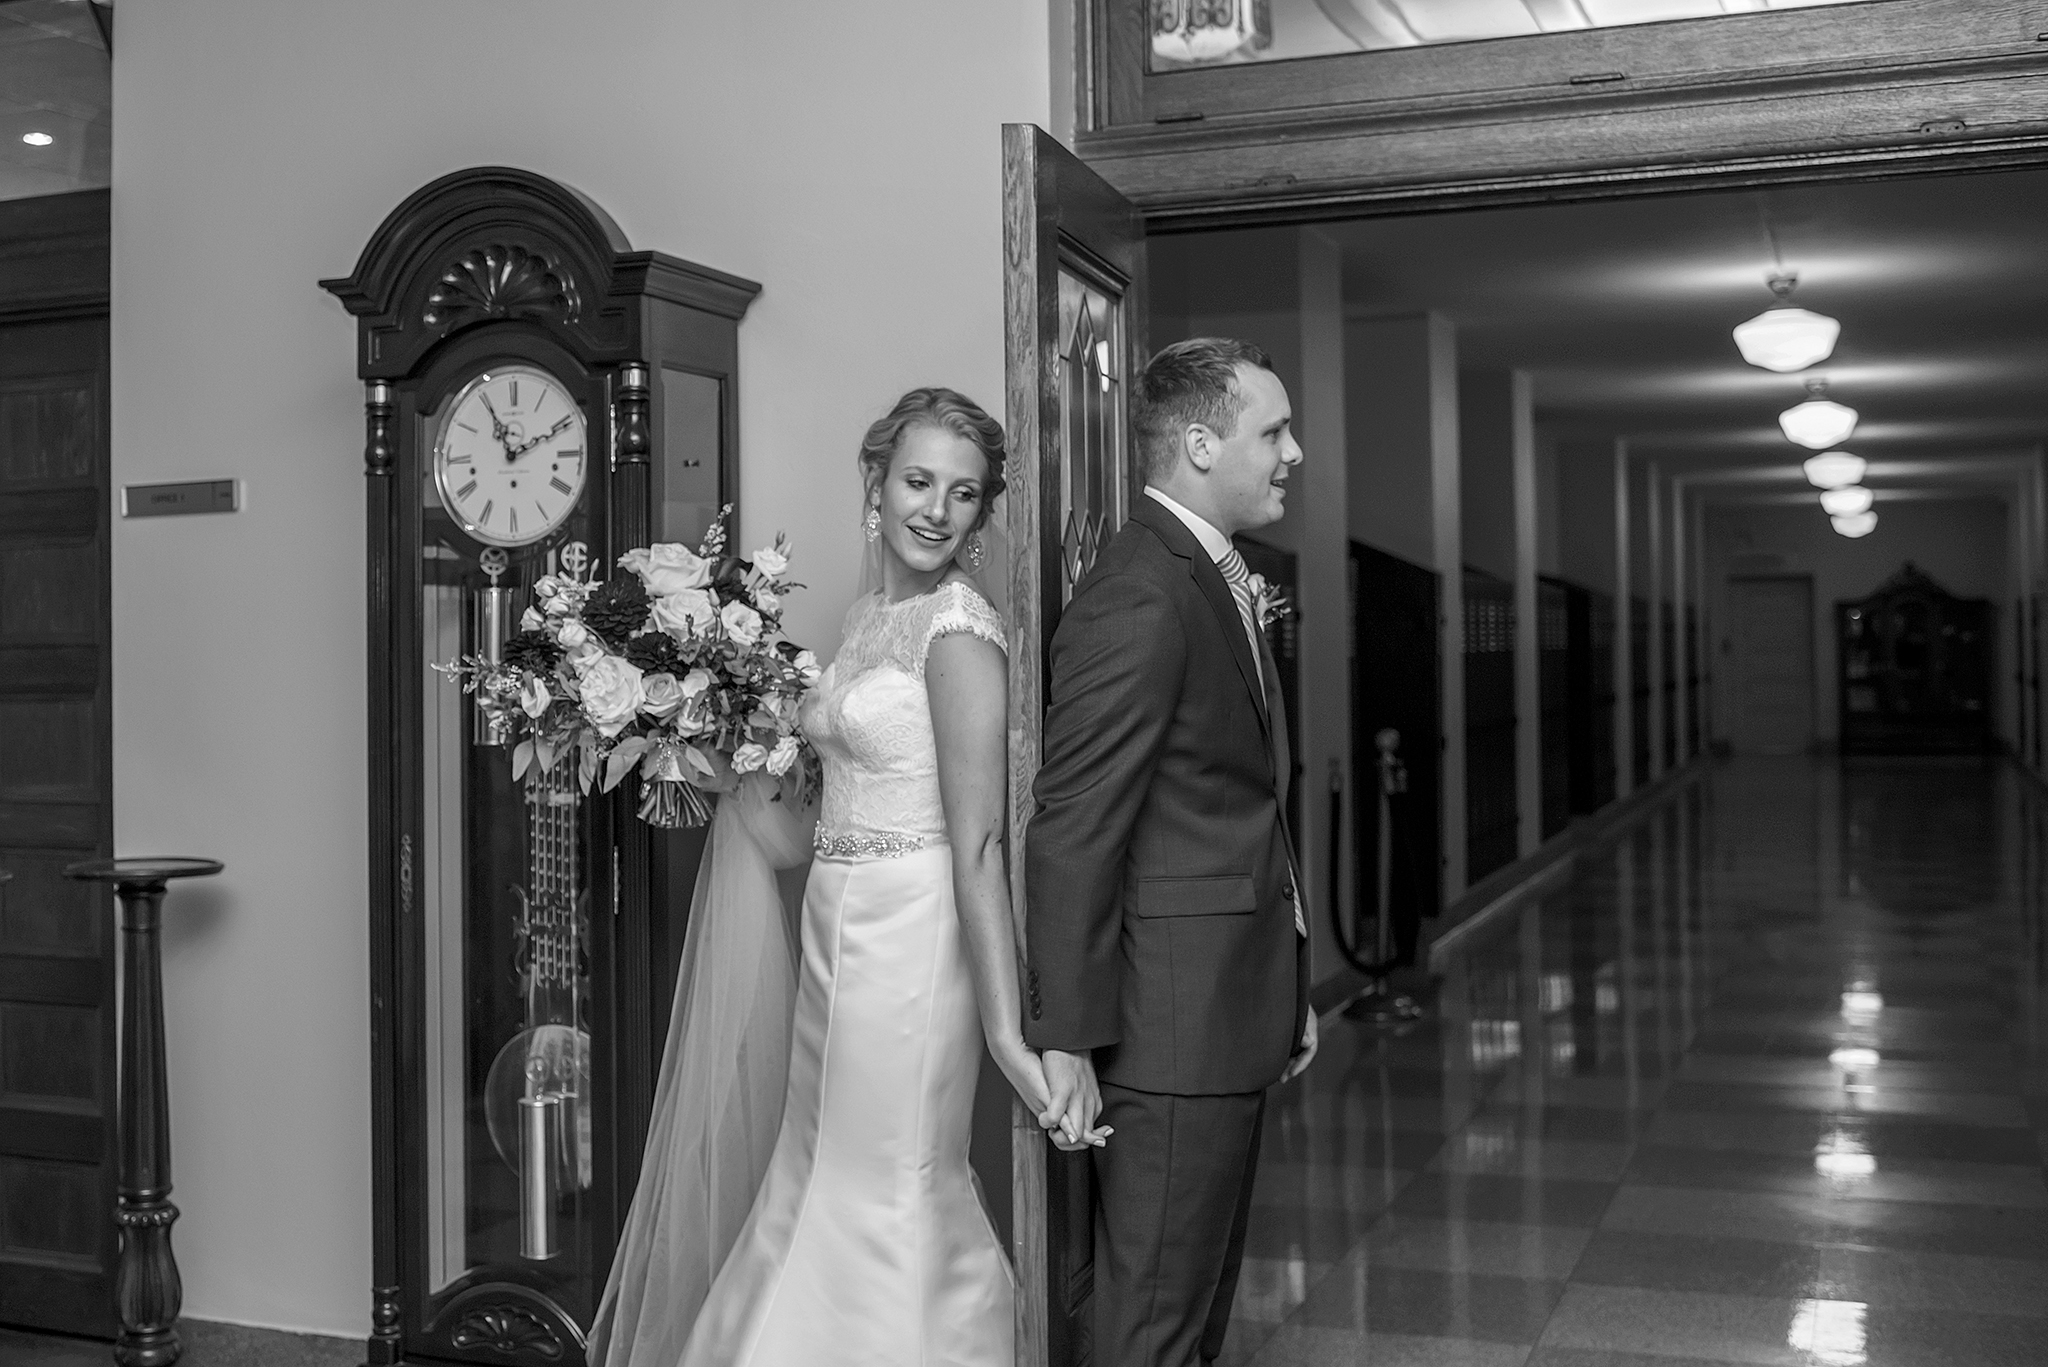 Lindsay-Adkins-Photography-Michigan-Wedding-Photographer-Nazareth-Hall-Grand-Rapids-Ohio-Wedding-35